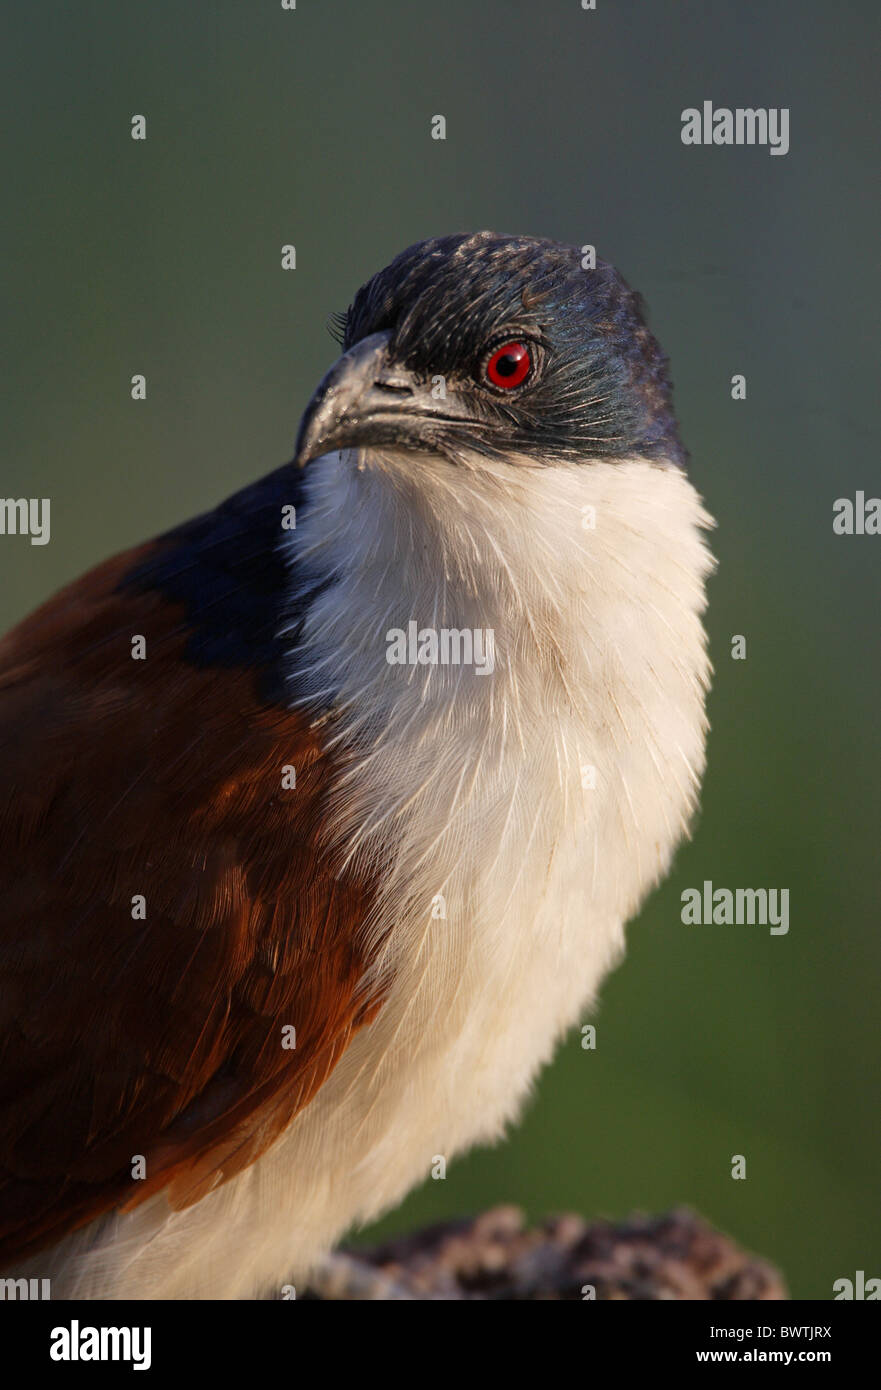 Blue-headed Coucal (Centropus monachus) adult, close-up of head and neck, Ethiopia, april - Stock Image